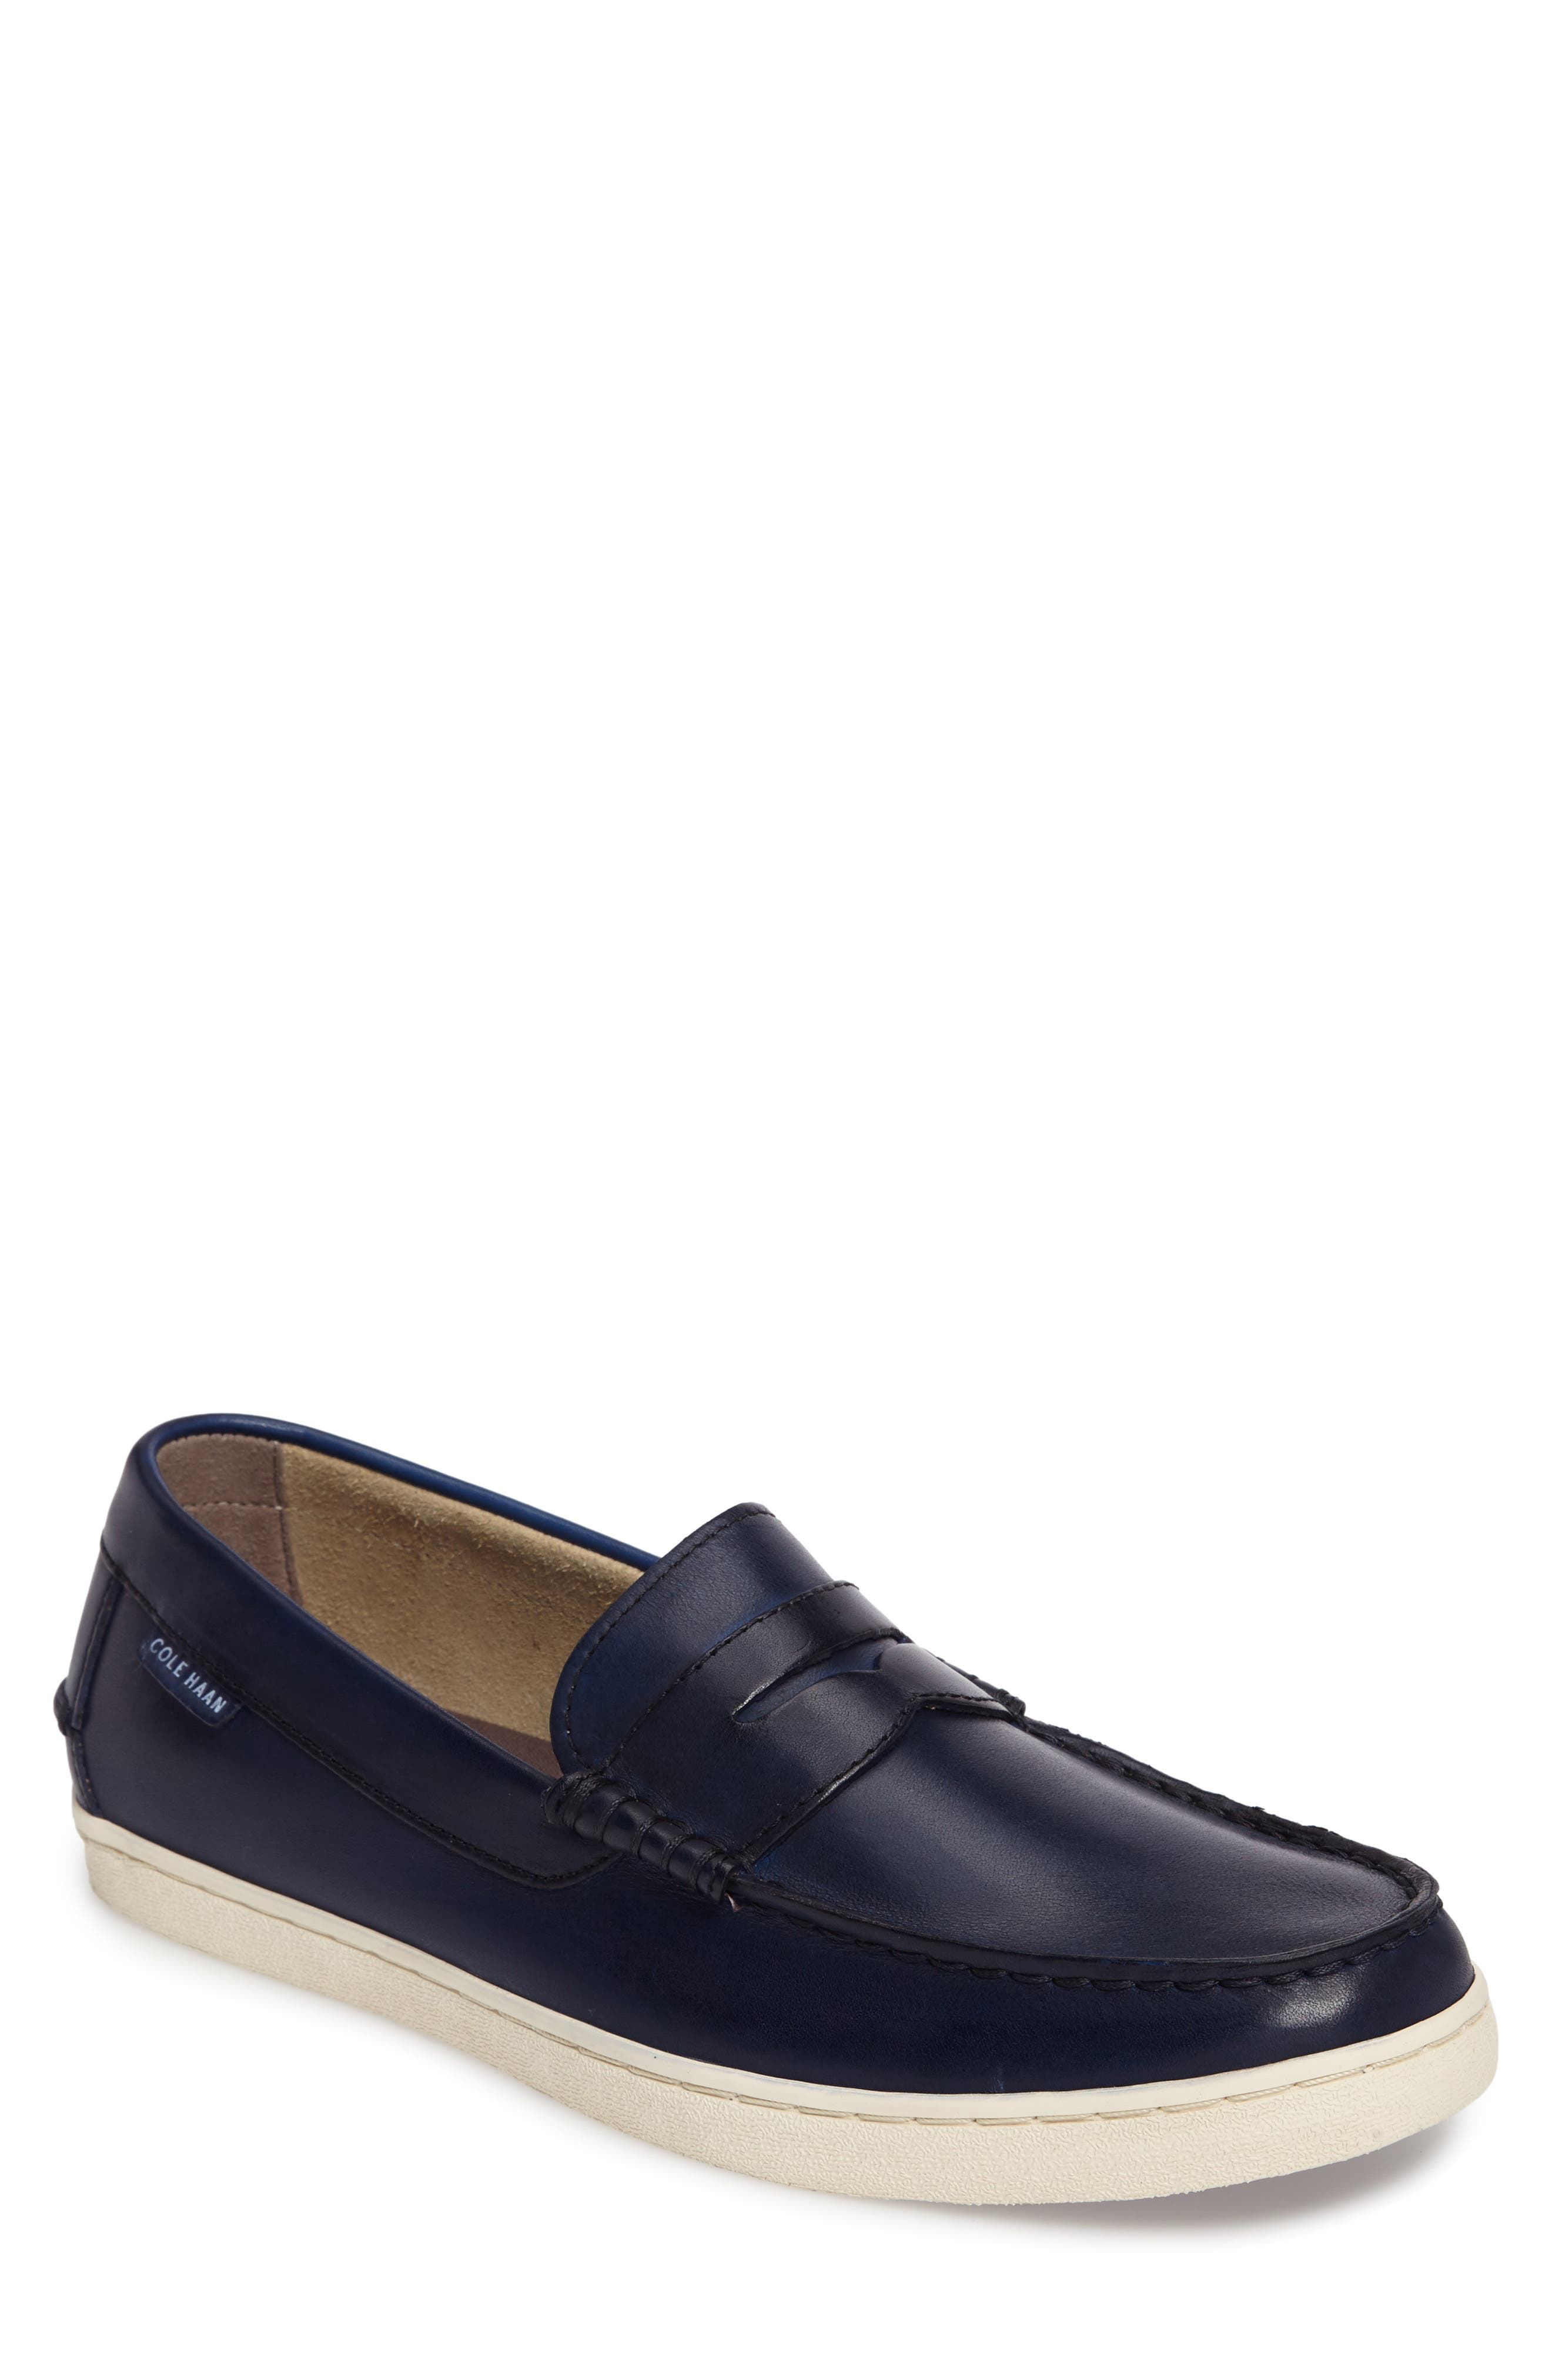 Pinch Penny Loafer,                             Main thumbnail 1, color,                             Blazer Blue Leather